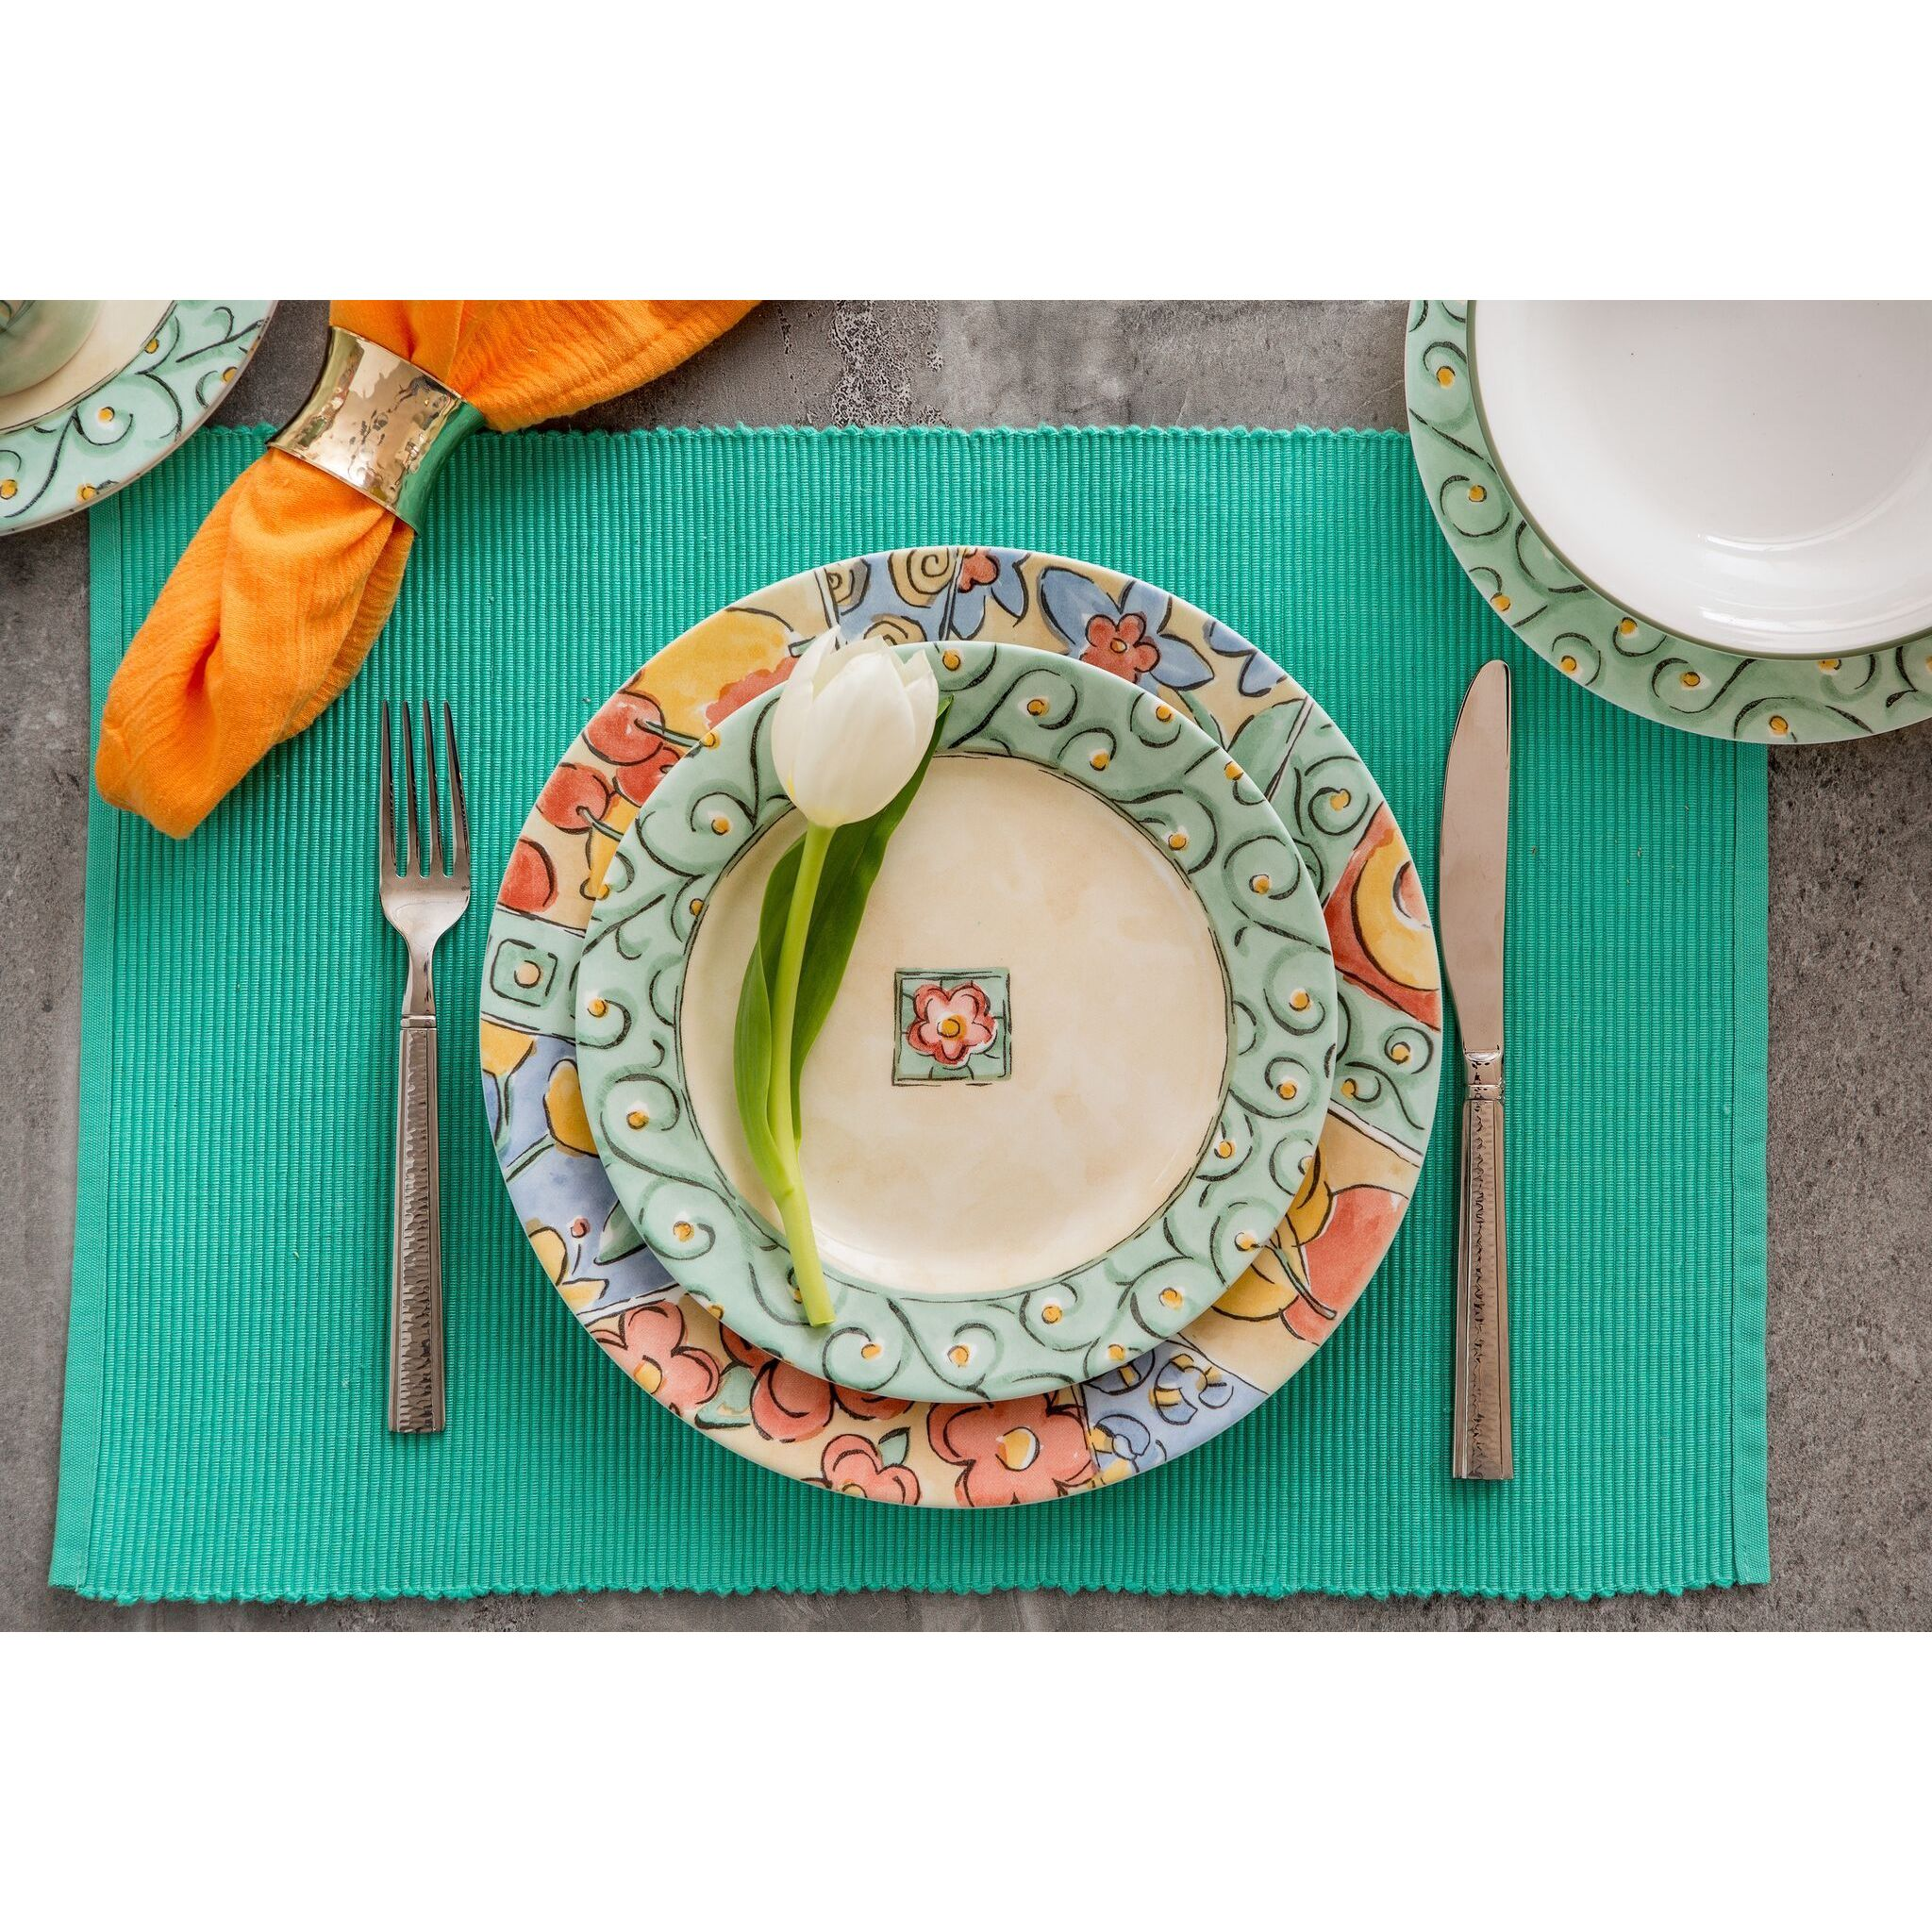 Shop Corelle Impressions Watercolors Stoneware and Glass 16-piece Dinnerware Set - Free Shipping Today - Overstock.com - 17130310  sc 1 st  Overstock.com & Shop Corelle Impressions Watercolors Stoneware and Glass 16-piece ...